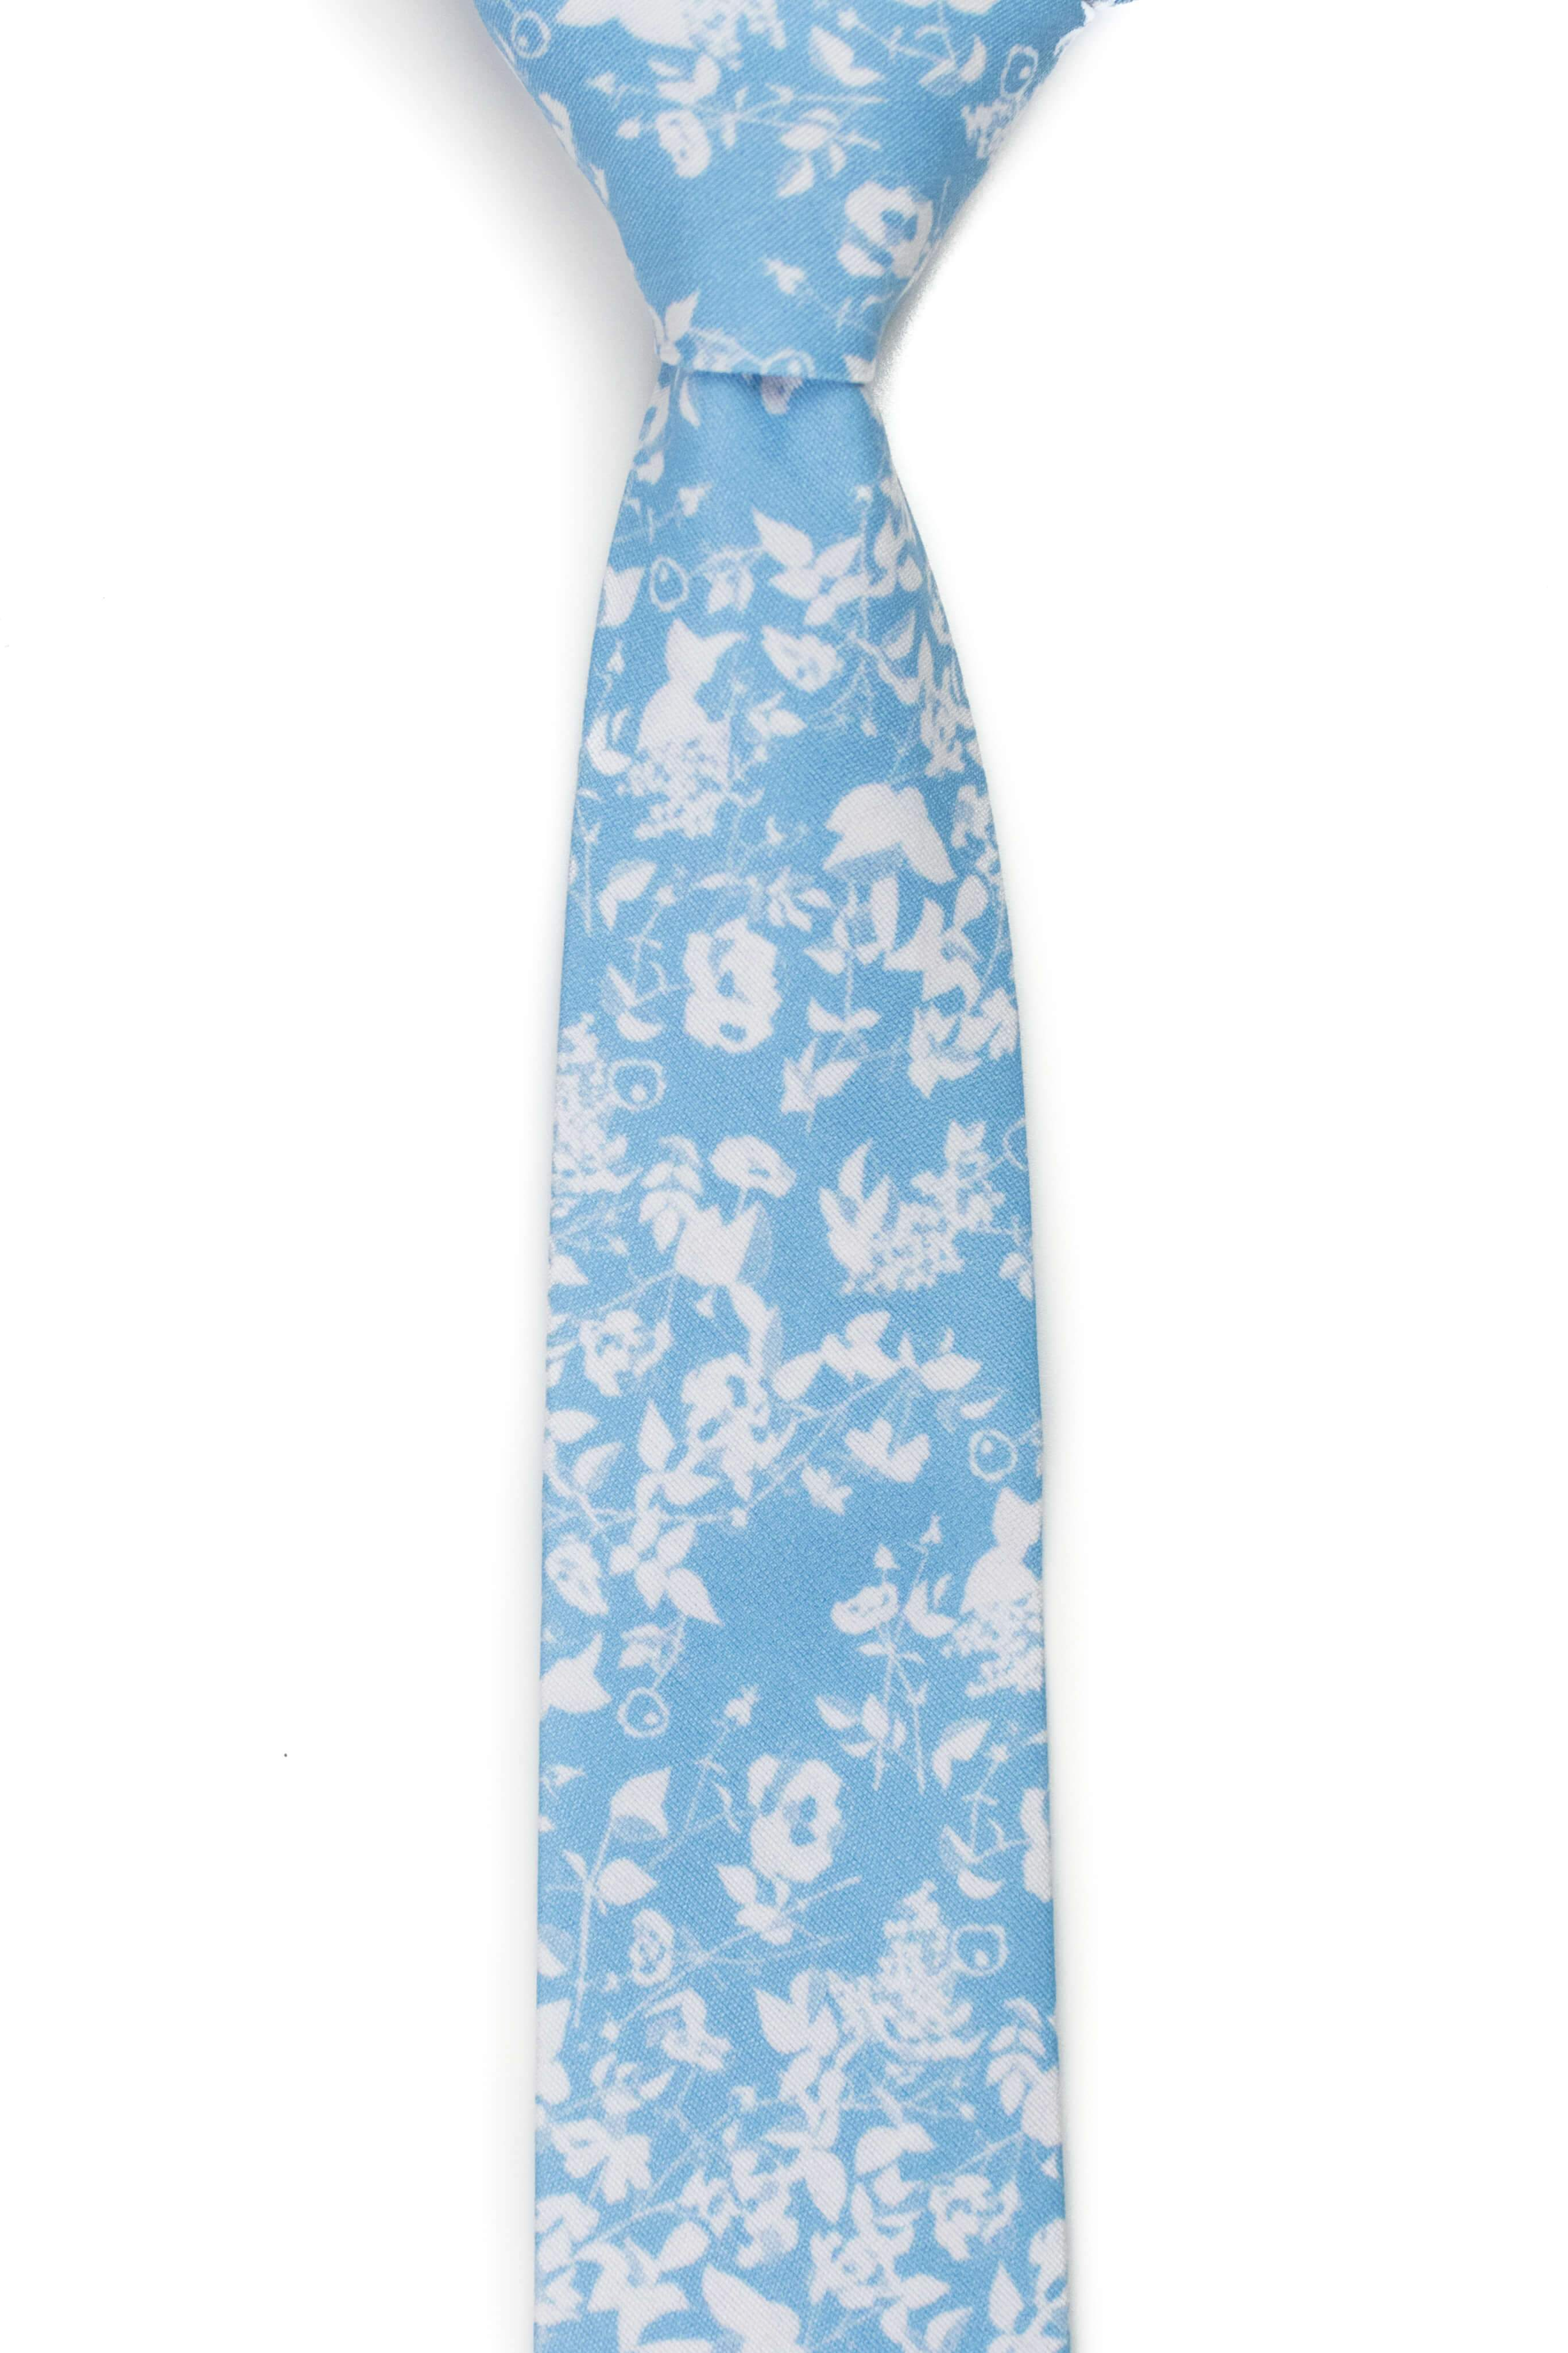 ice blue floral tie front view